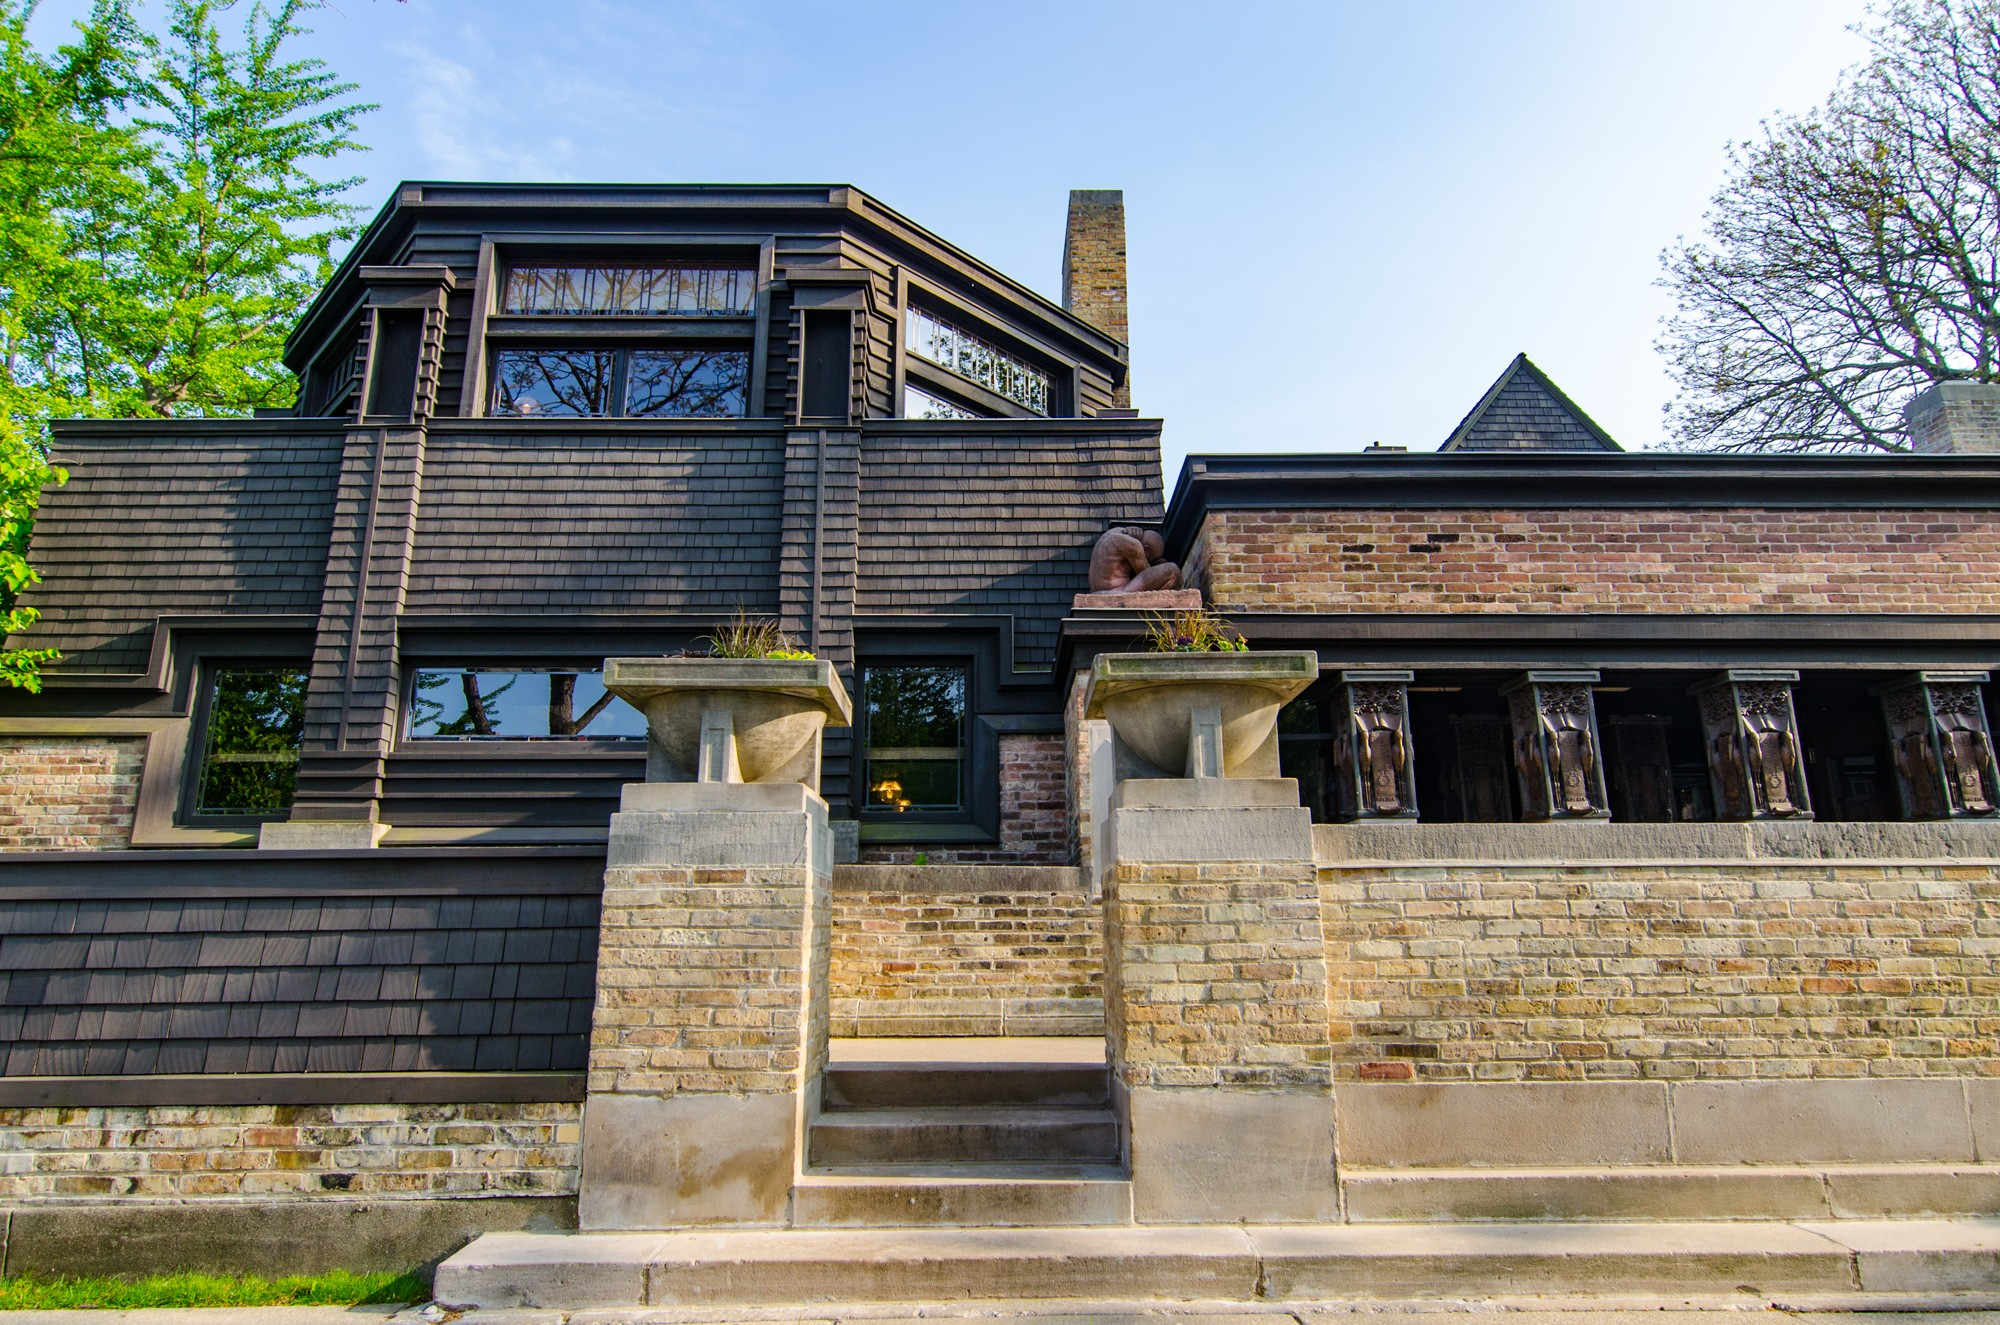 Frank lloyd wright home and studio sites open house for Frank lloyd wright list of houses